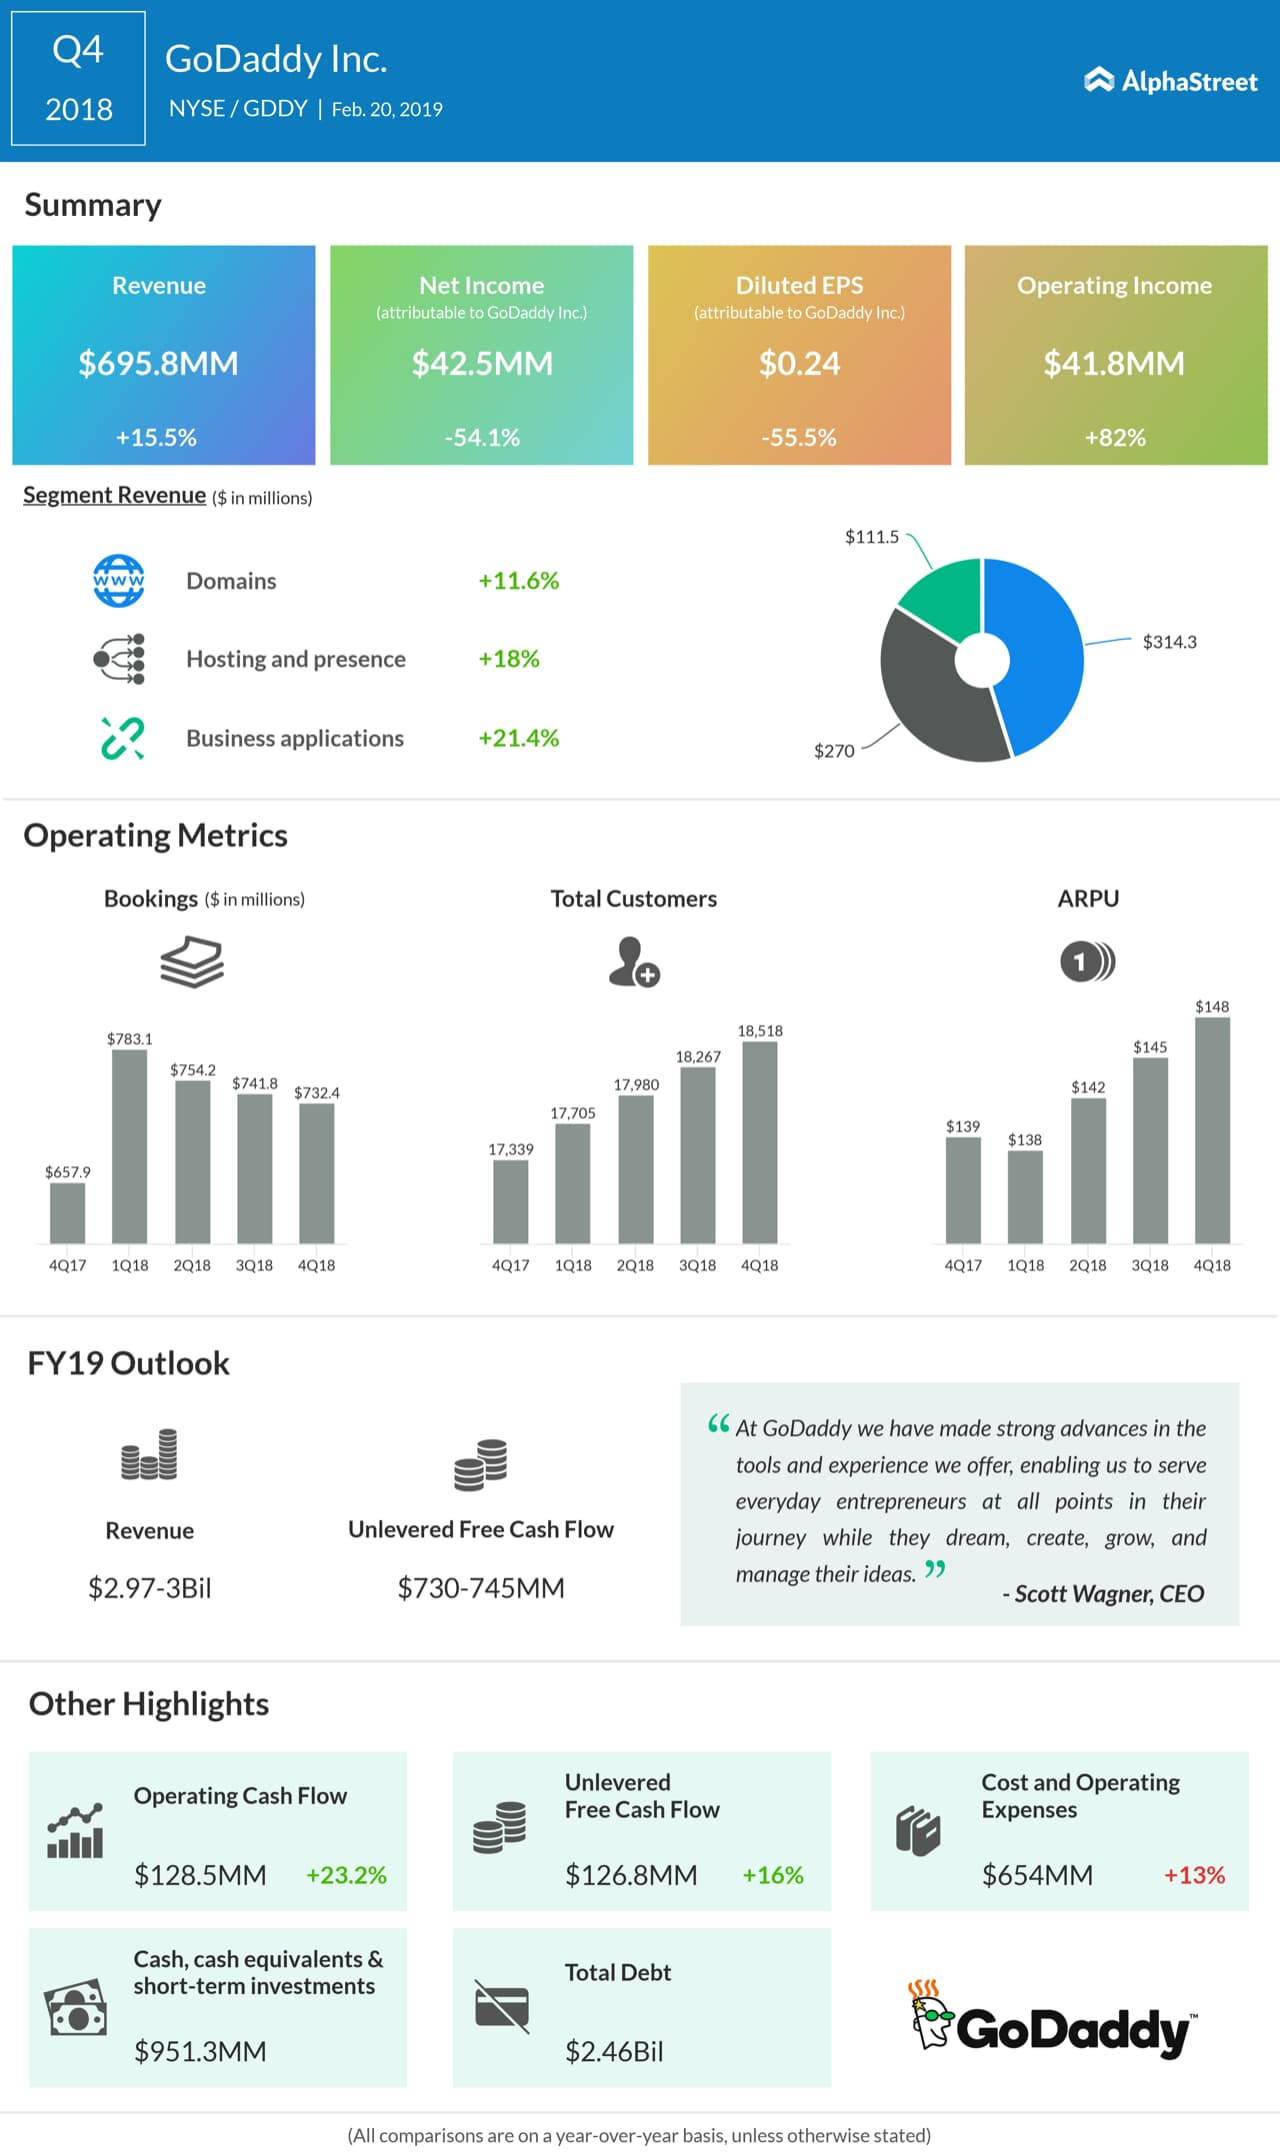 An infographic on GoDaddy's fourth quarter earnings results